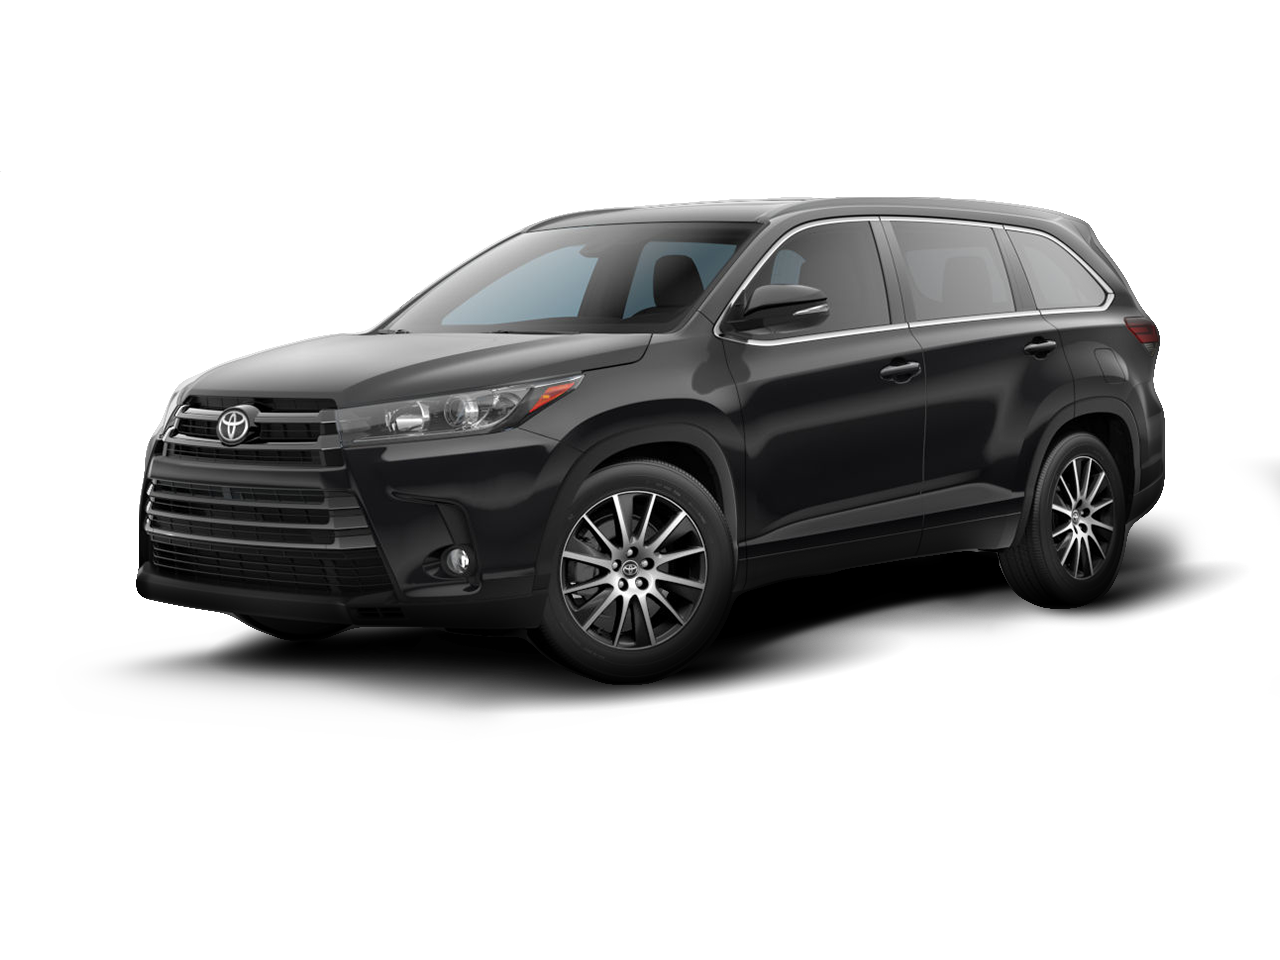 Search new Toyota Highlander Inventory